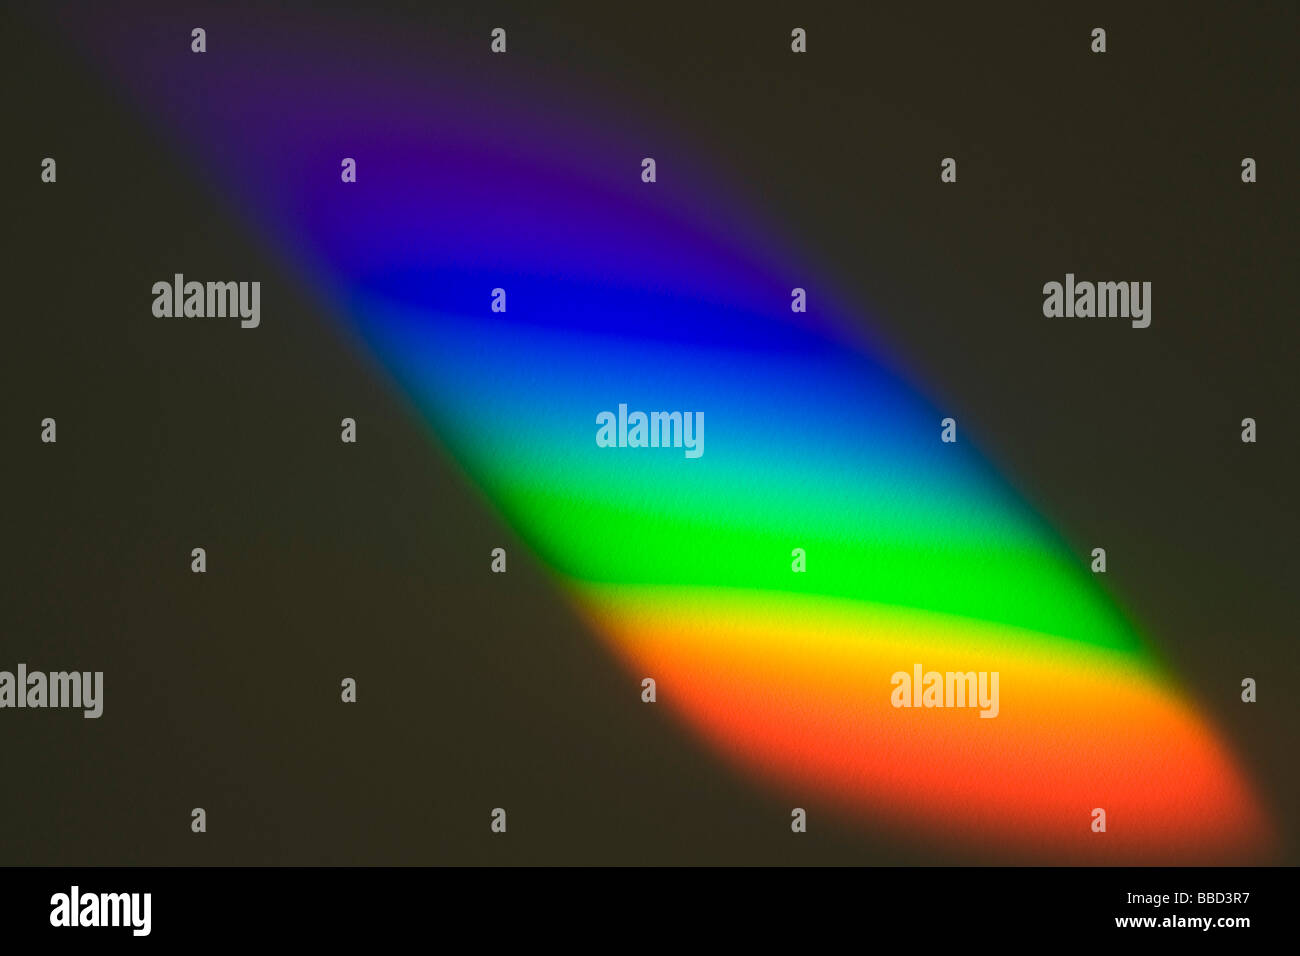 Spectrum cast by a prism from sunlight through a window on to white paper - Stock Image